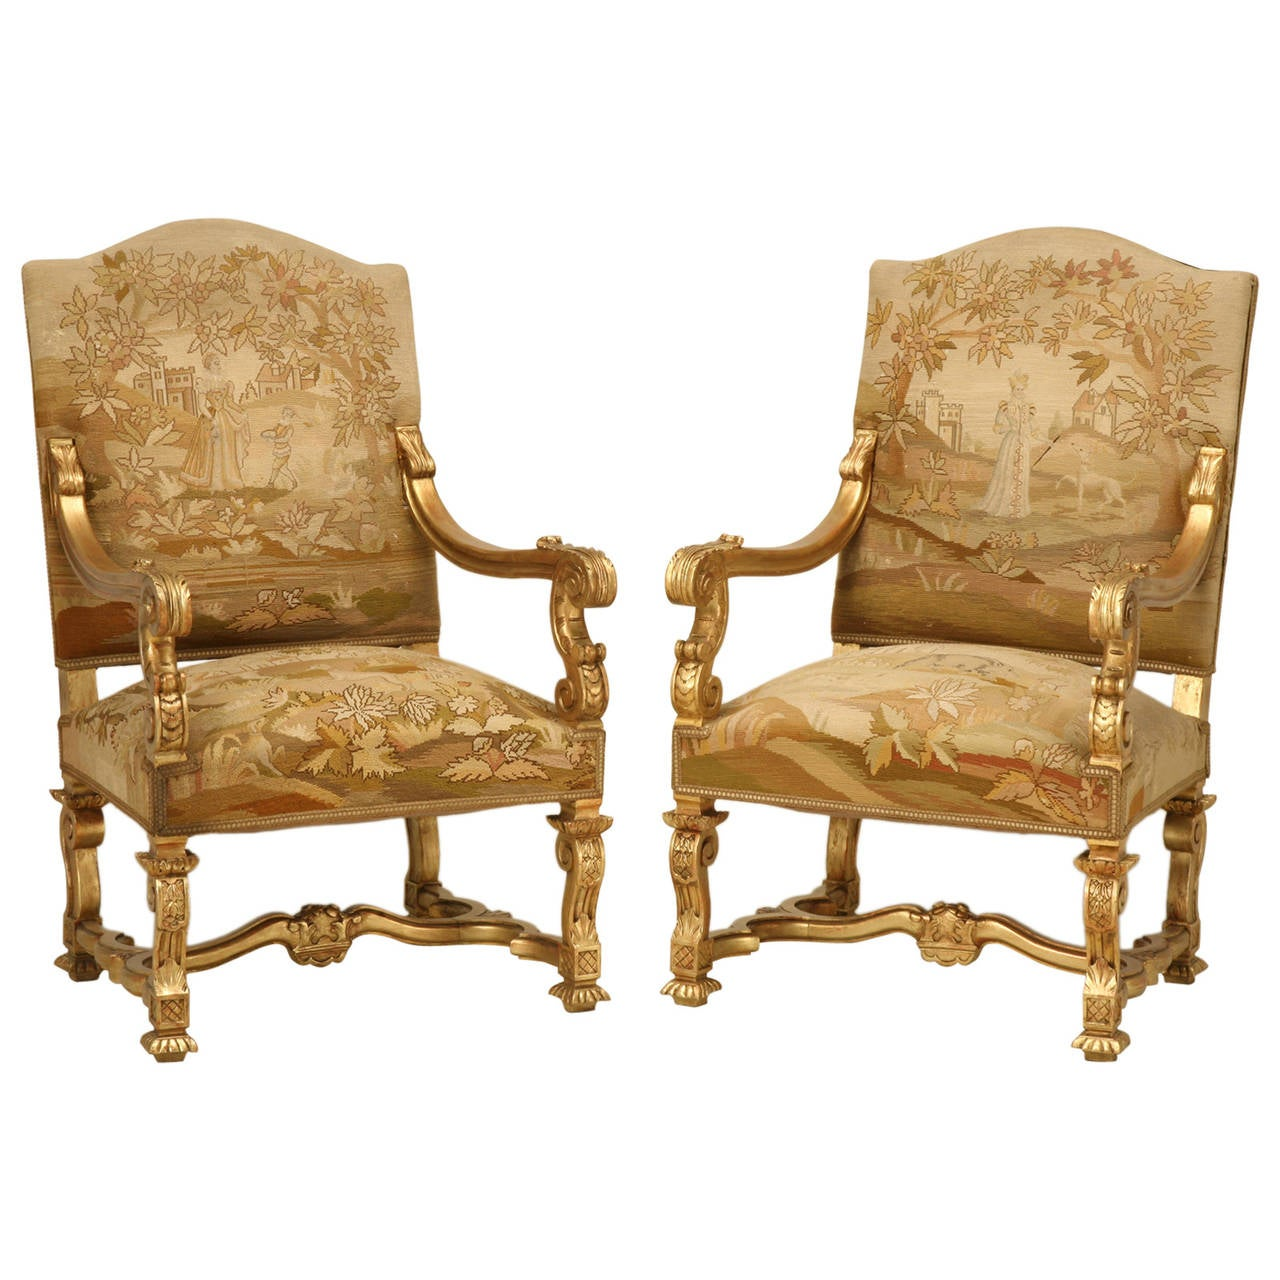 French Chairs Antique French Gilded Throne Chairs Circa 1900 For Sale